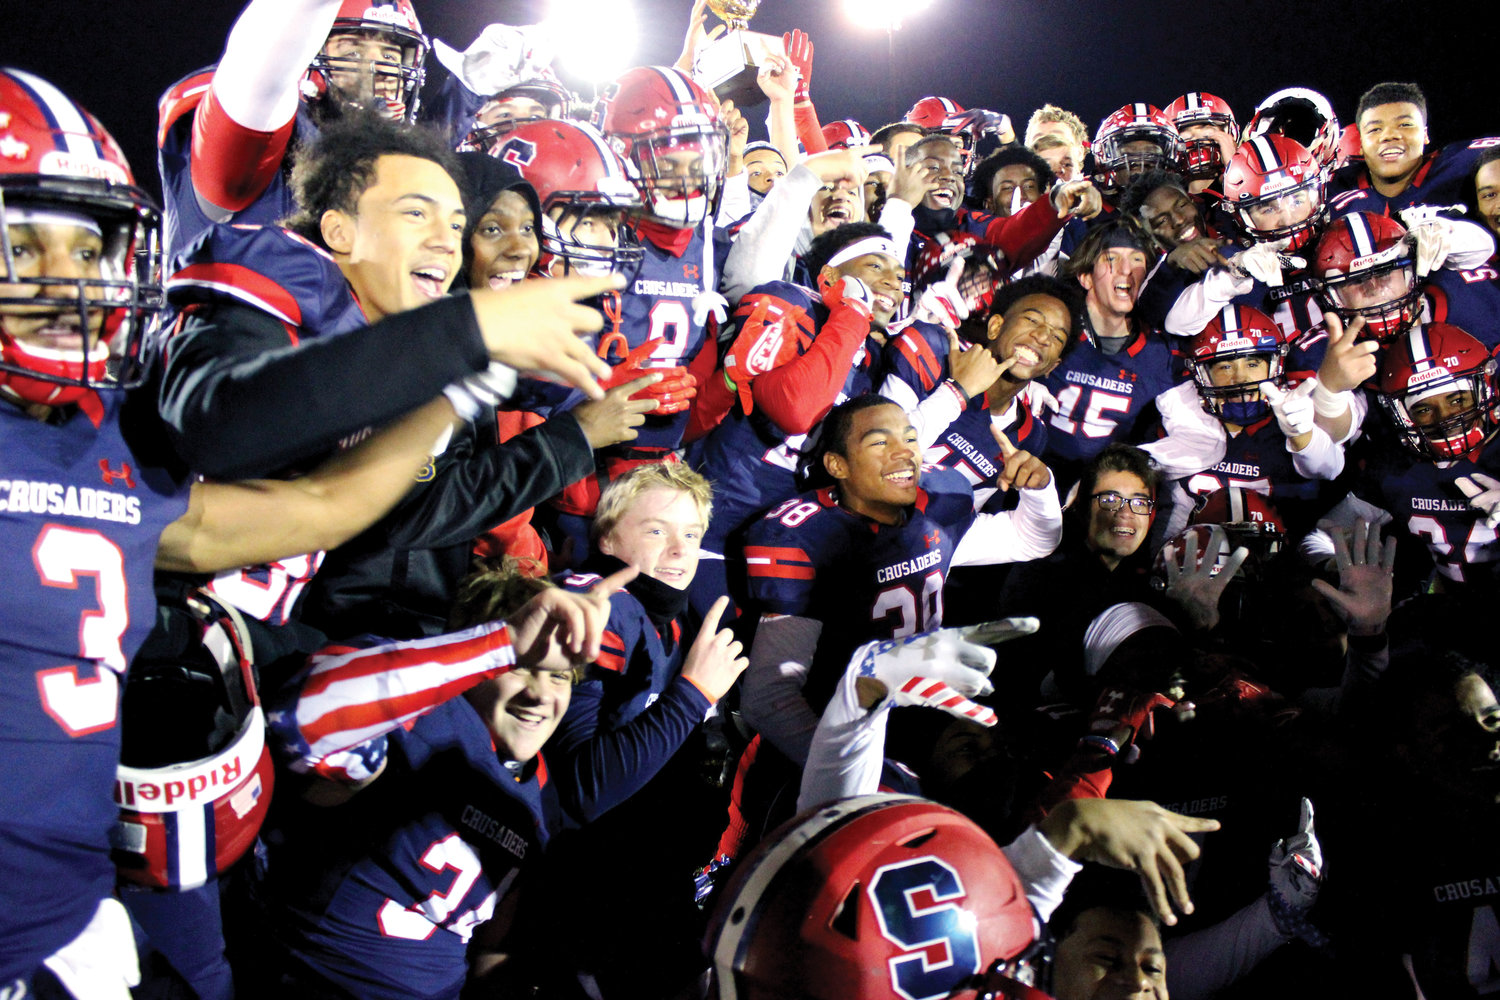 Archbishop Stepinac players celebrate winning the Catholic High School Football League of Metropolitan New York AAA League championship with a 29-18 victory over Cardinal Hayes at Mitchel Athletic Complex in Uniondale Nov. 17.